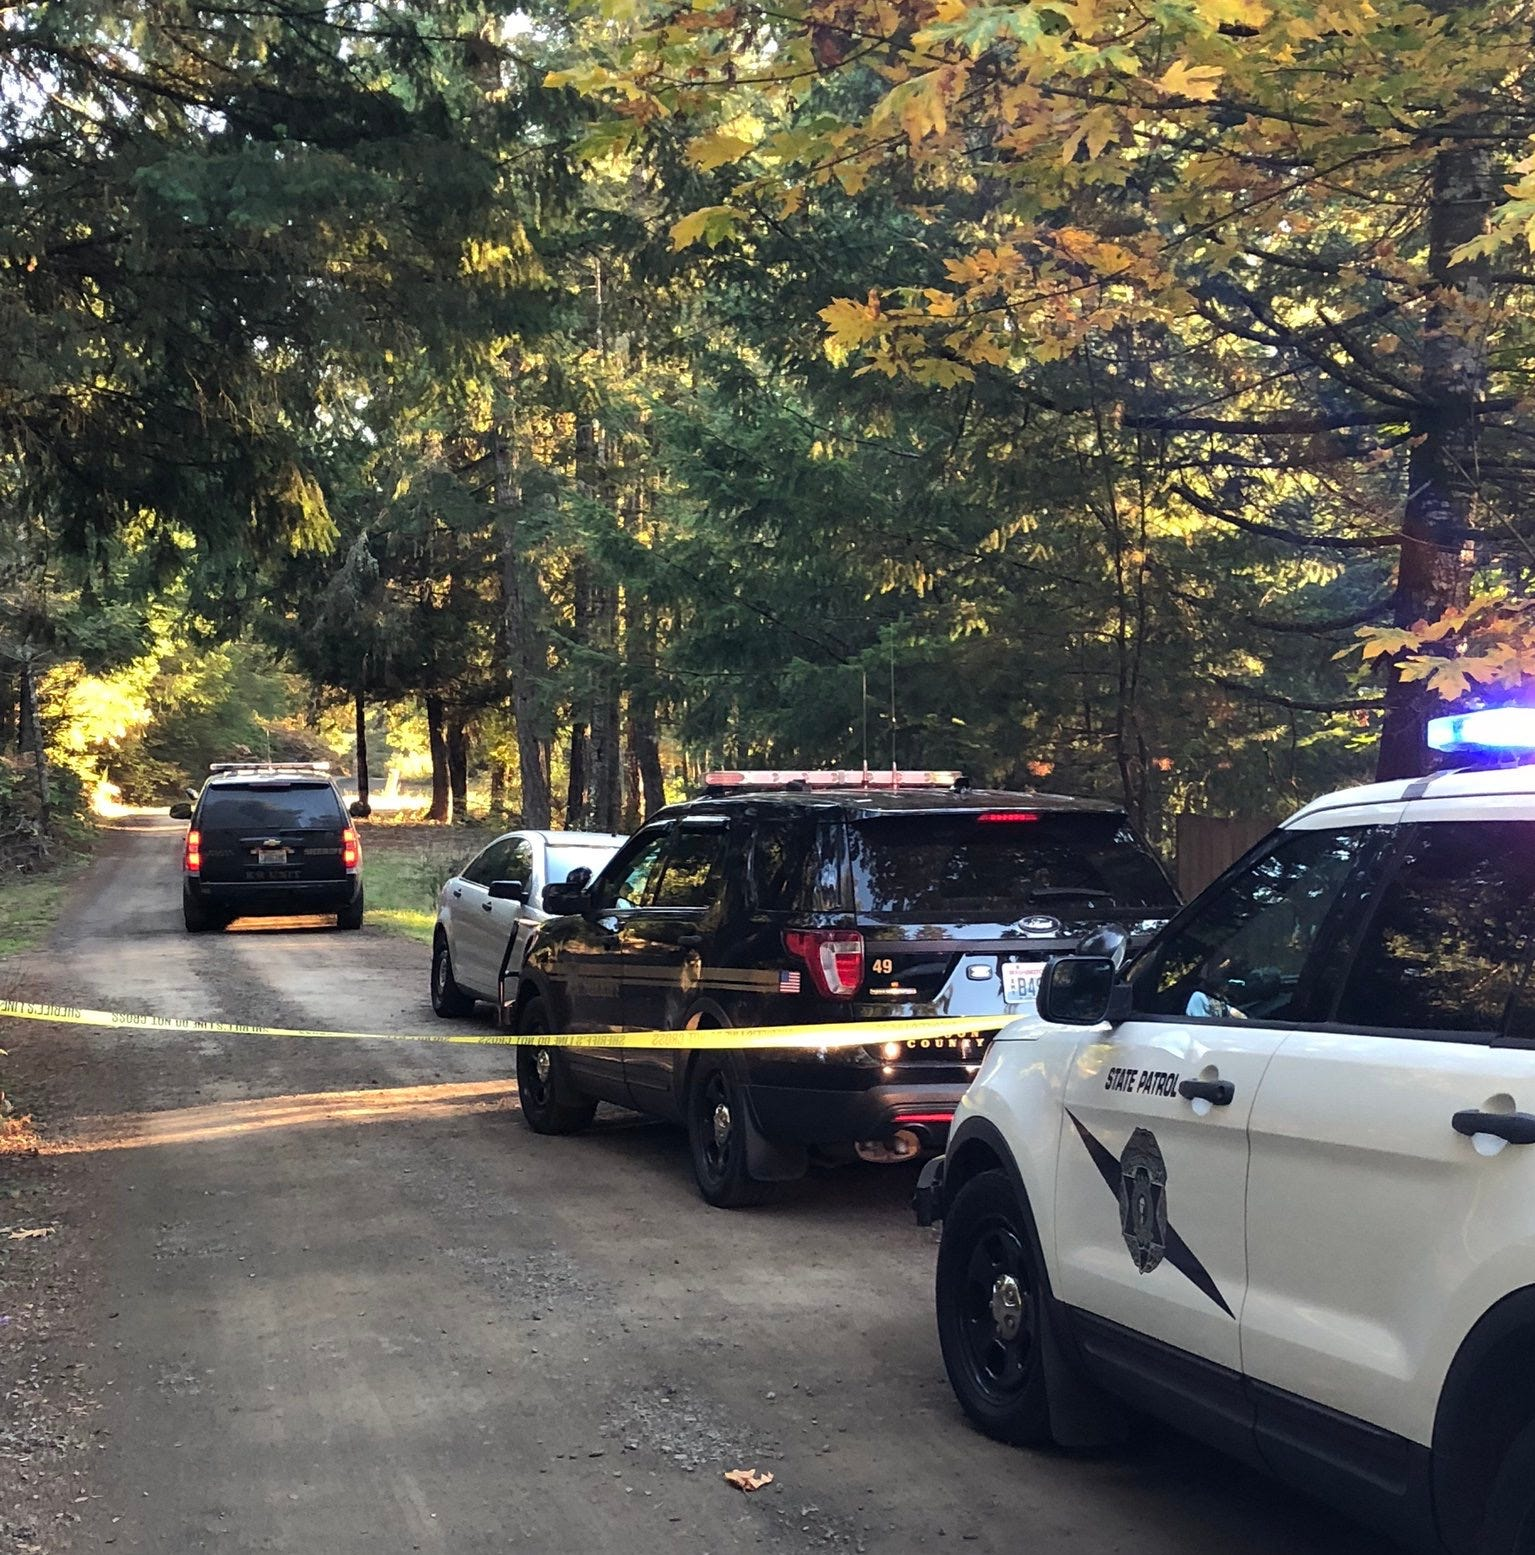 6-year-old child returns home in Mason County to find two dead